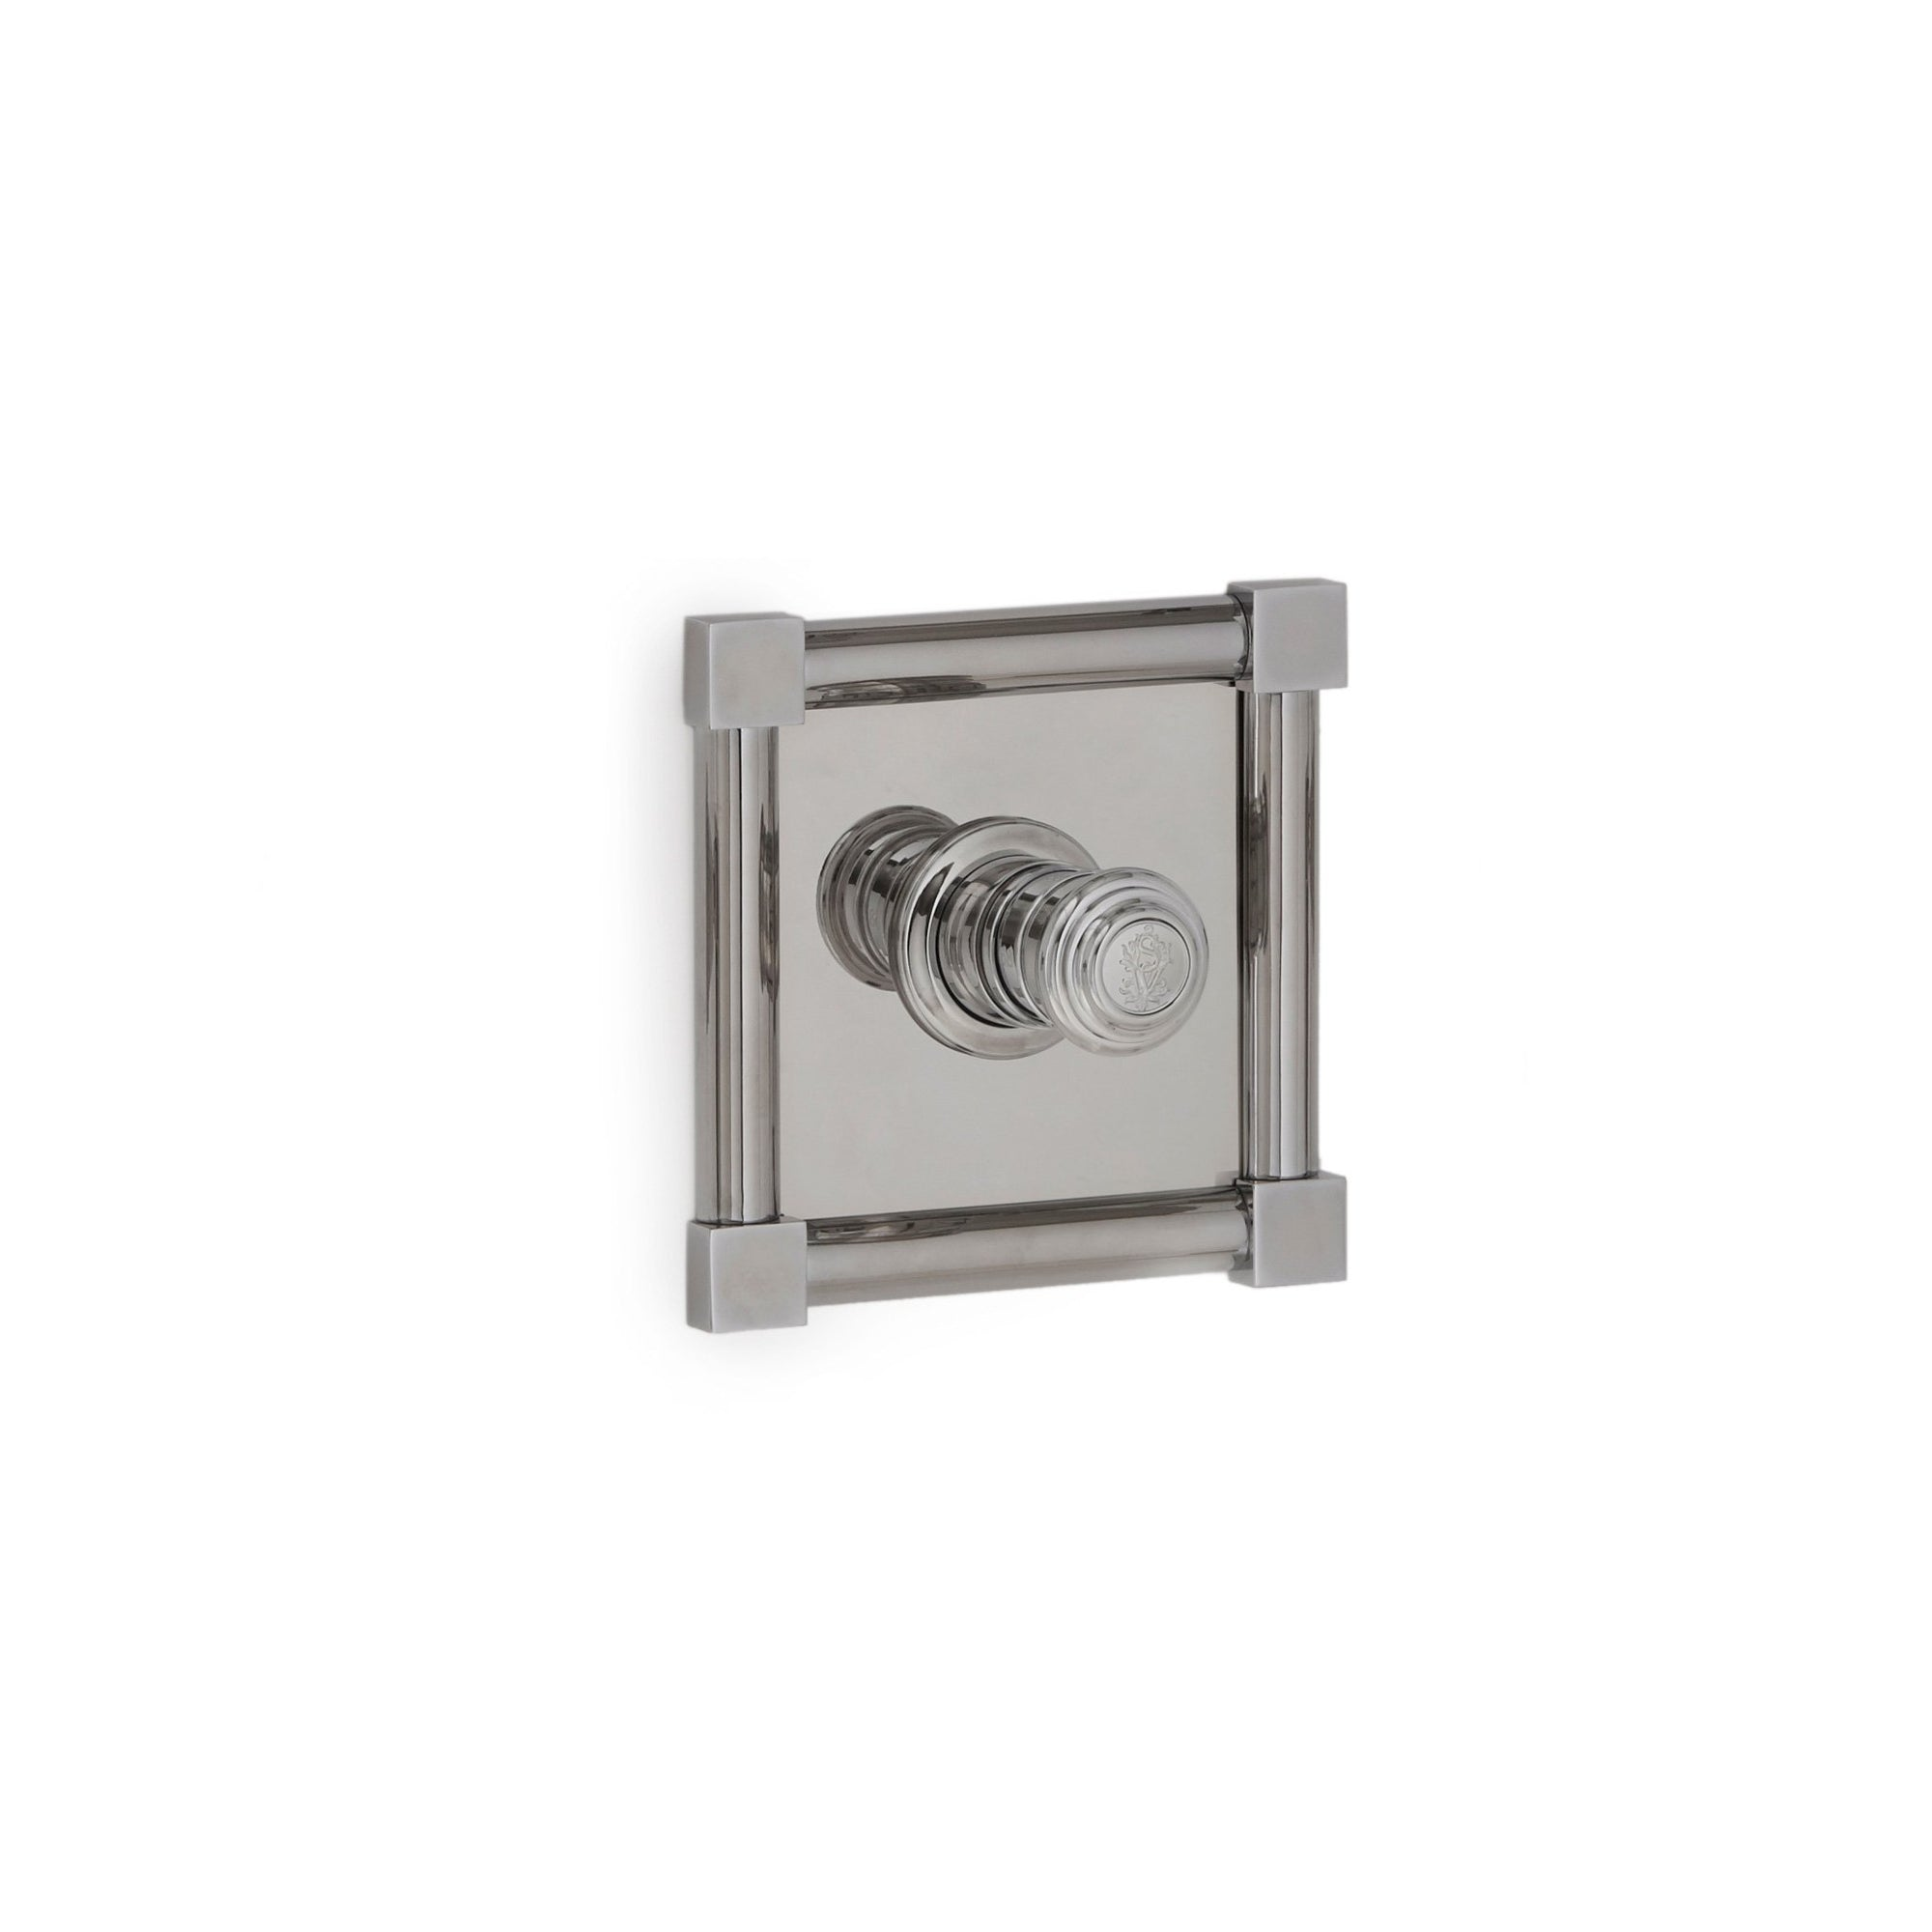 TMO01PL-LOGO-CP Sherle Wagner International Square Knuckle High Flow Thermostatic Trim in Polished Chrome metal finish